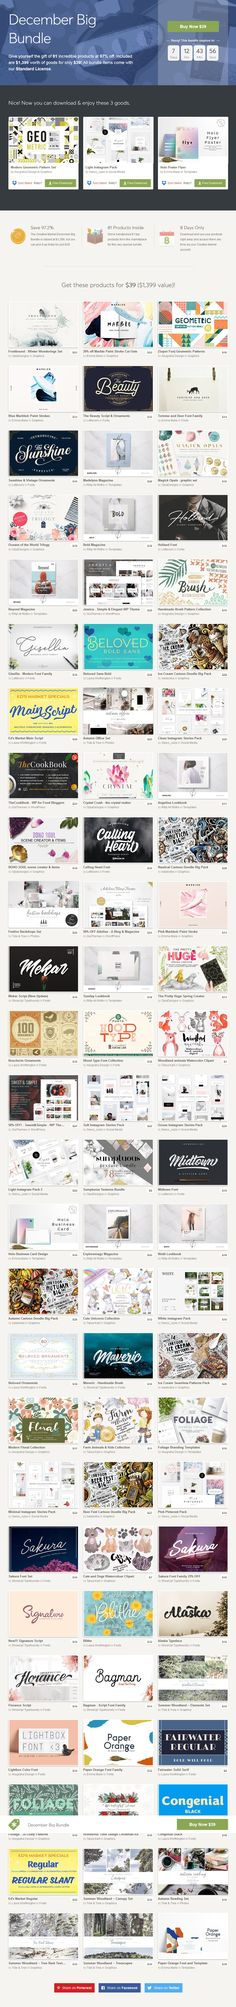 December Big Bundle + Freebies : Give yourself the gift of 81 #creative #design products at 97% off. Included are $1,399 worth of goods for only $39! ( #fonts #typography #freebies #christmas #watrercolor #texture #patterns #art #webdesign #wordpress  #graphics #vintage #socialmedia #promotion #bloggers #lookbook  #photographers #vector #illustrations #doodle #scrapbooking  #instagramstories  )